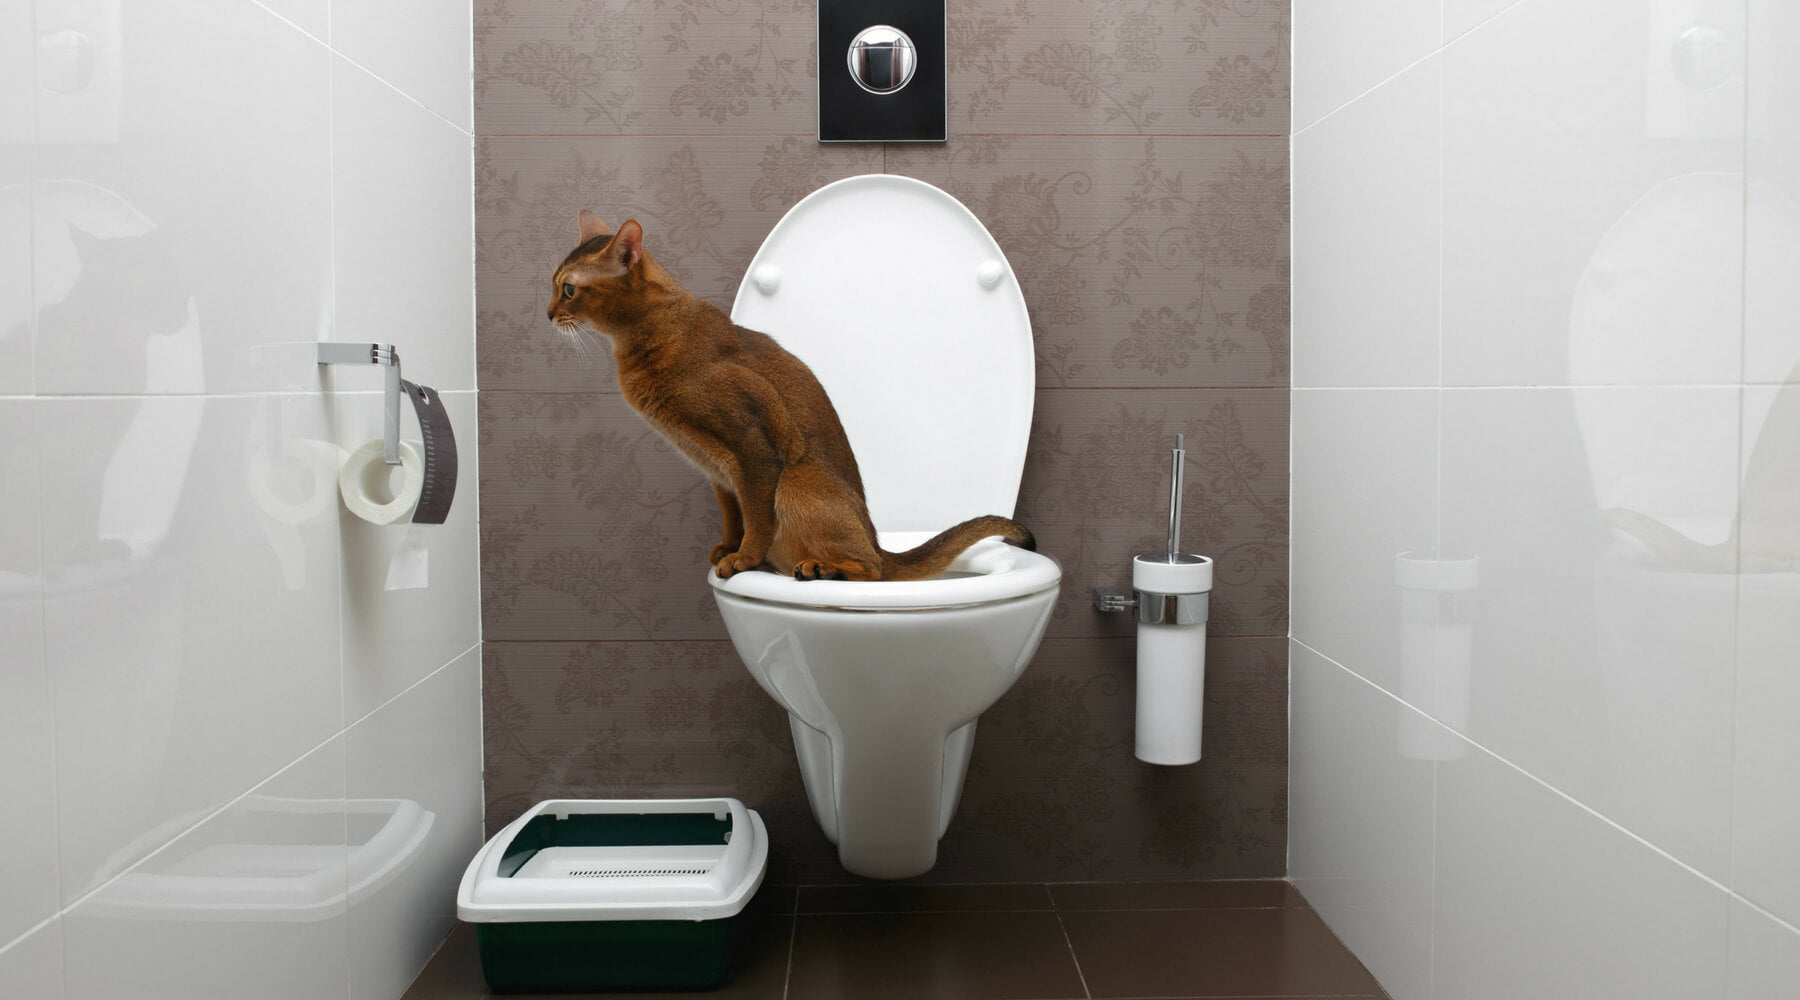 Proper litter box environment ends unwanted litter scatter: A study based on scientific research